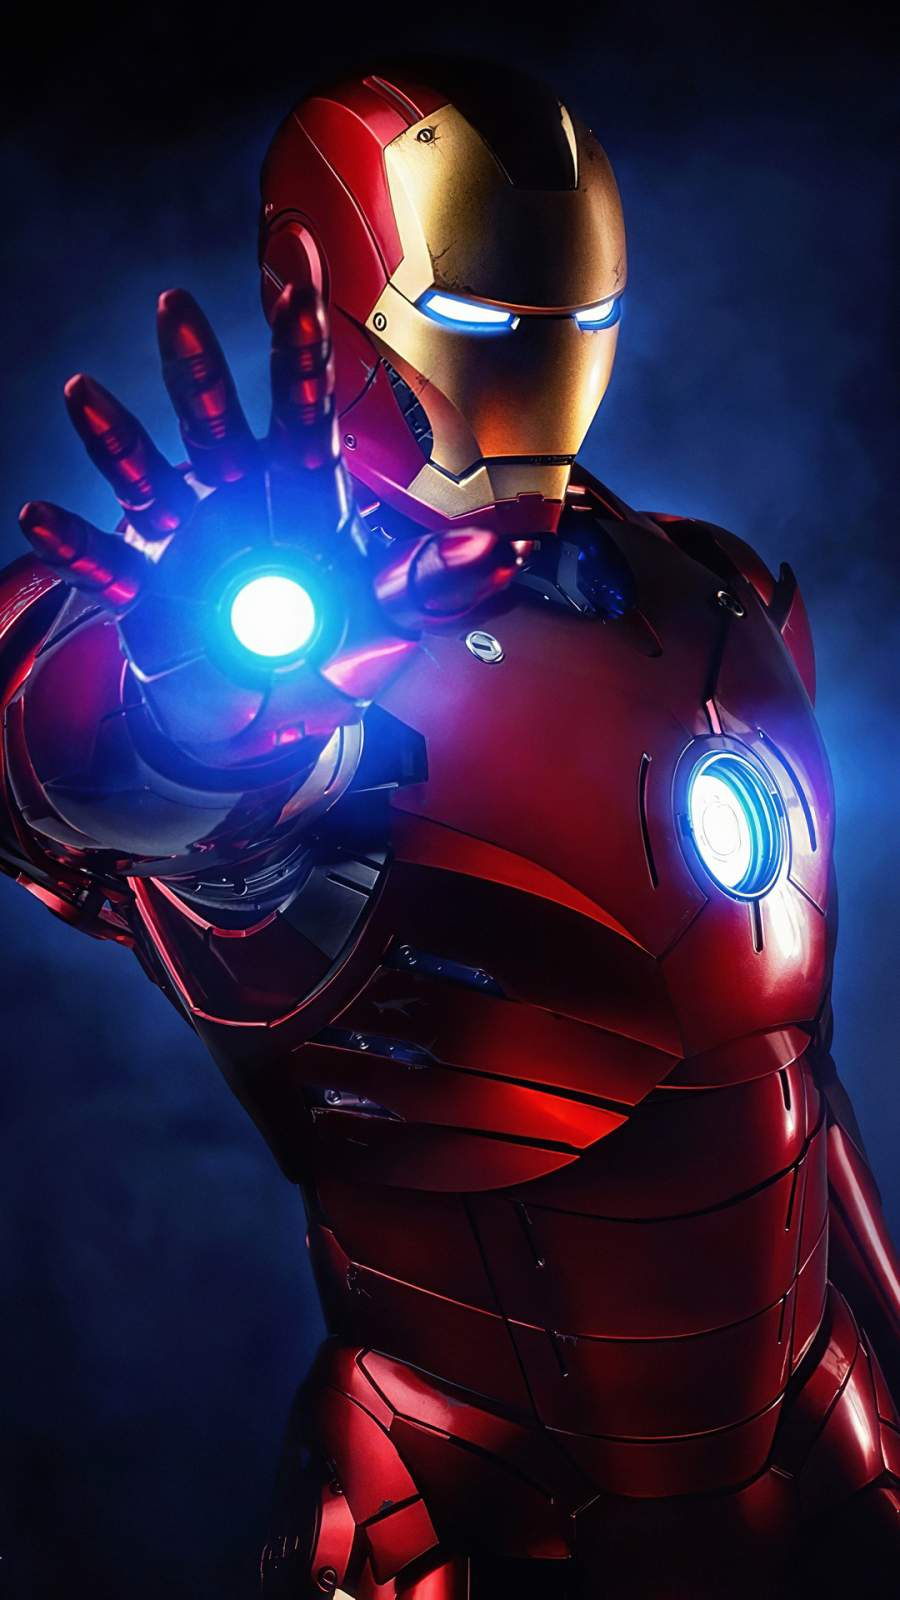 Iron Man Armor 4K iPhone Wallpaper 1 - iPhone Wallpapers ...